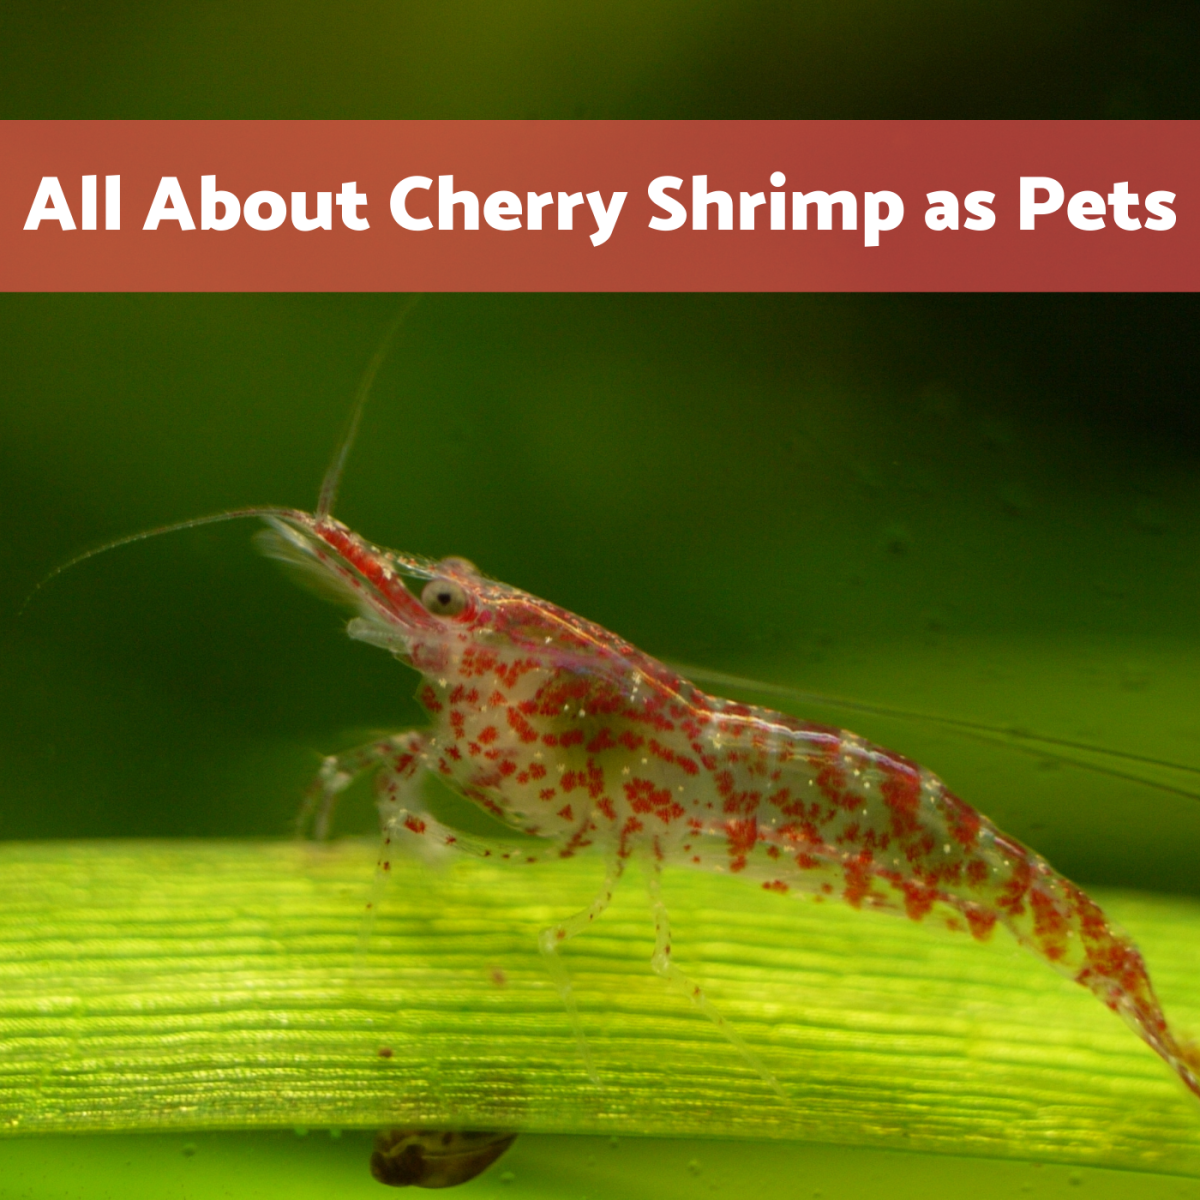 Shrimp actually make fun and interesting pets!